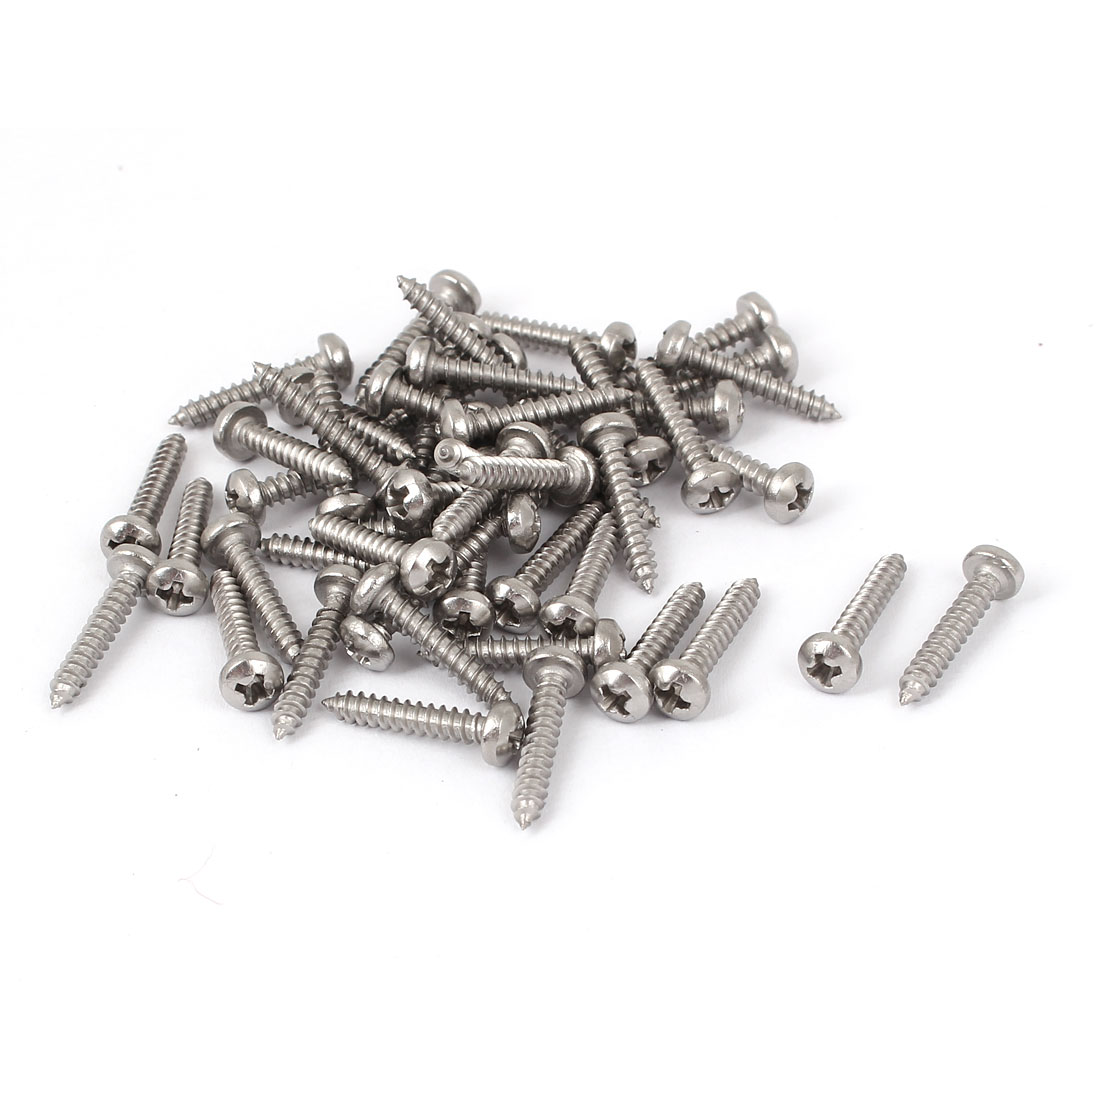 #4 M2.9x16mm Stainless Steel Phillips Round Pan Head Self Tapping Screws 50pcs